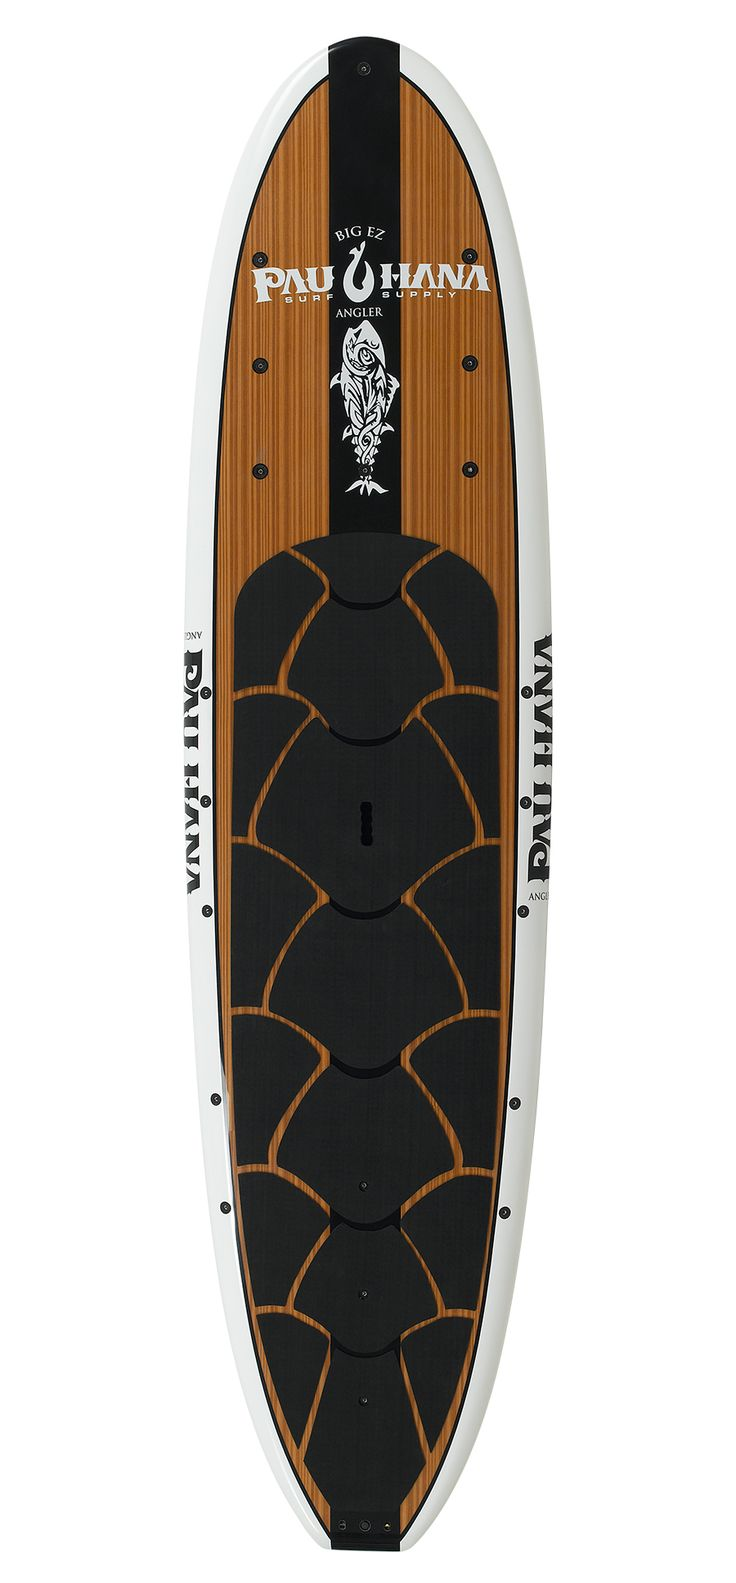 Stand up paddle board ornament - Paddleboarding The Pacific On A Stand Up Surfing Safari